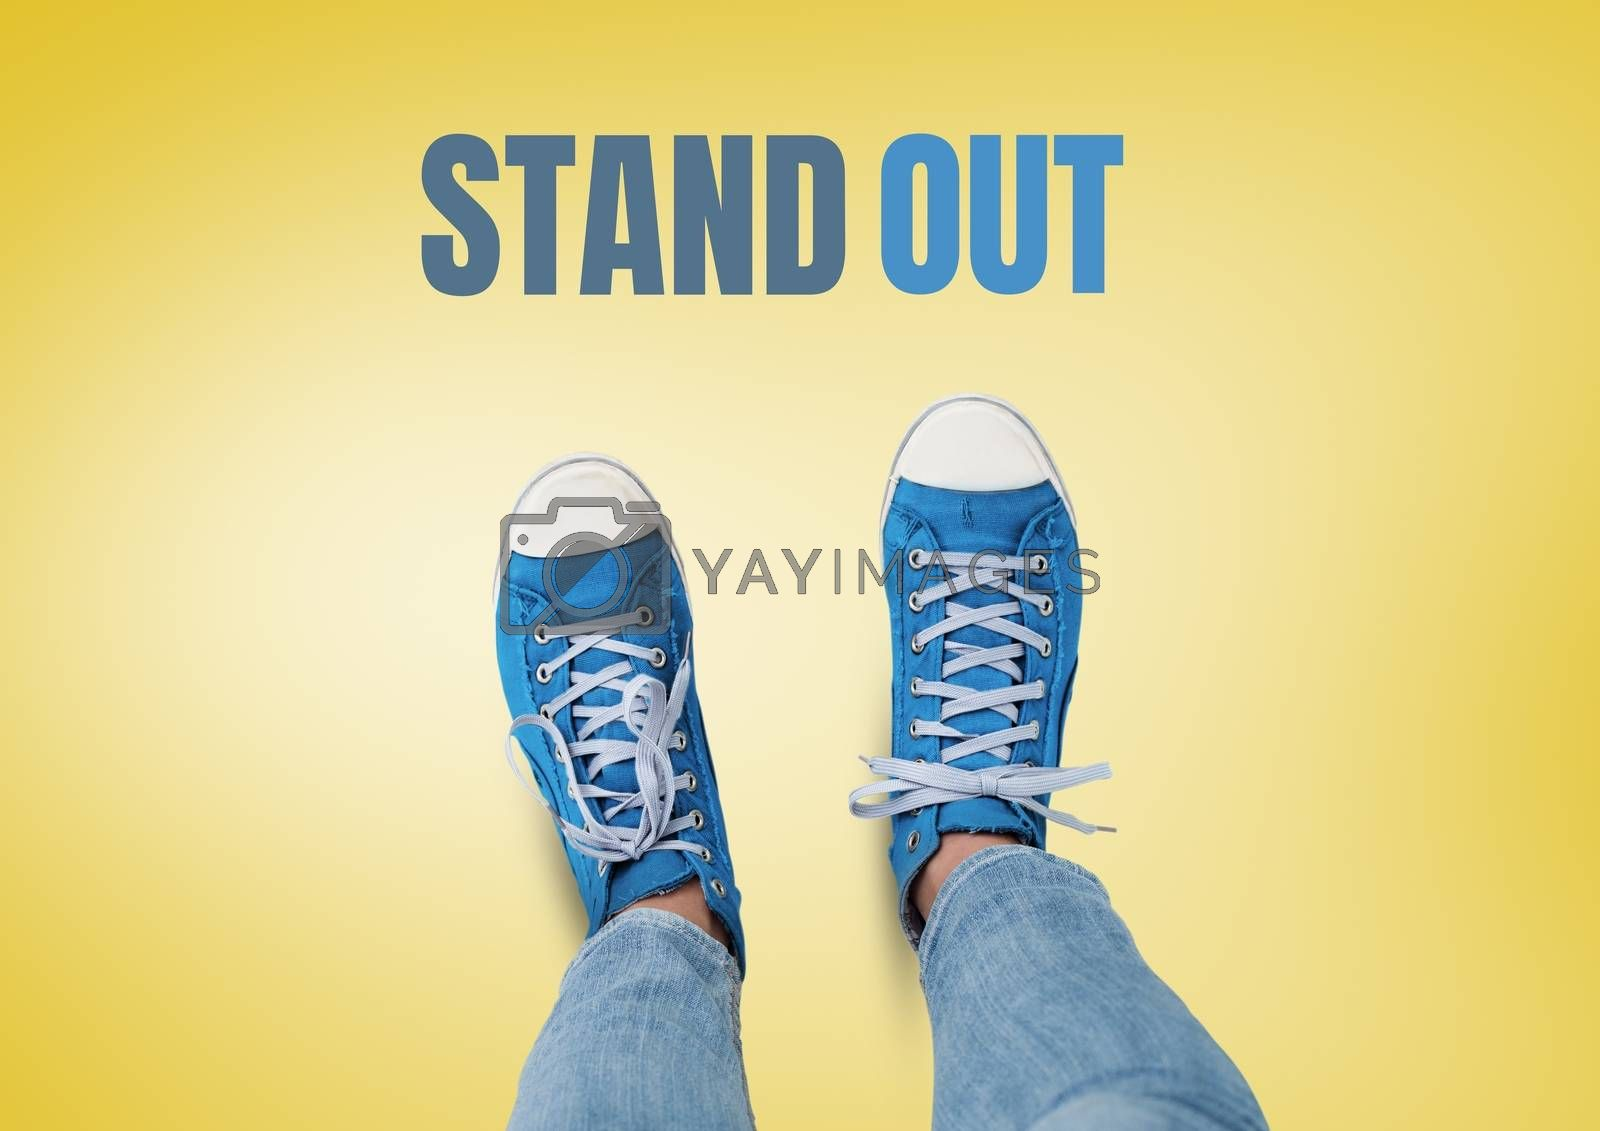 Stand out text and Blue shoes on feet with yellow background by Wavebreakmedia